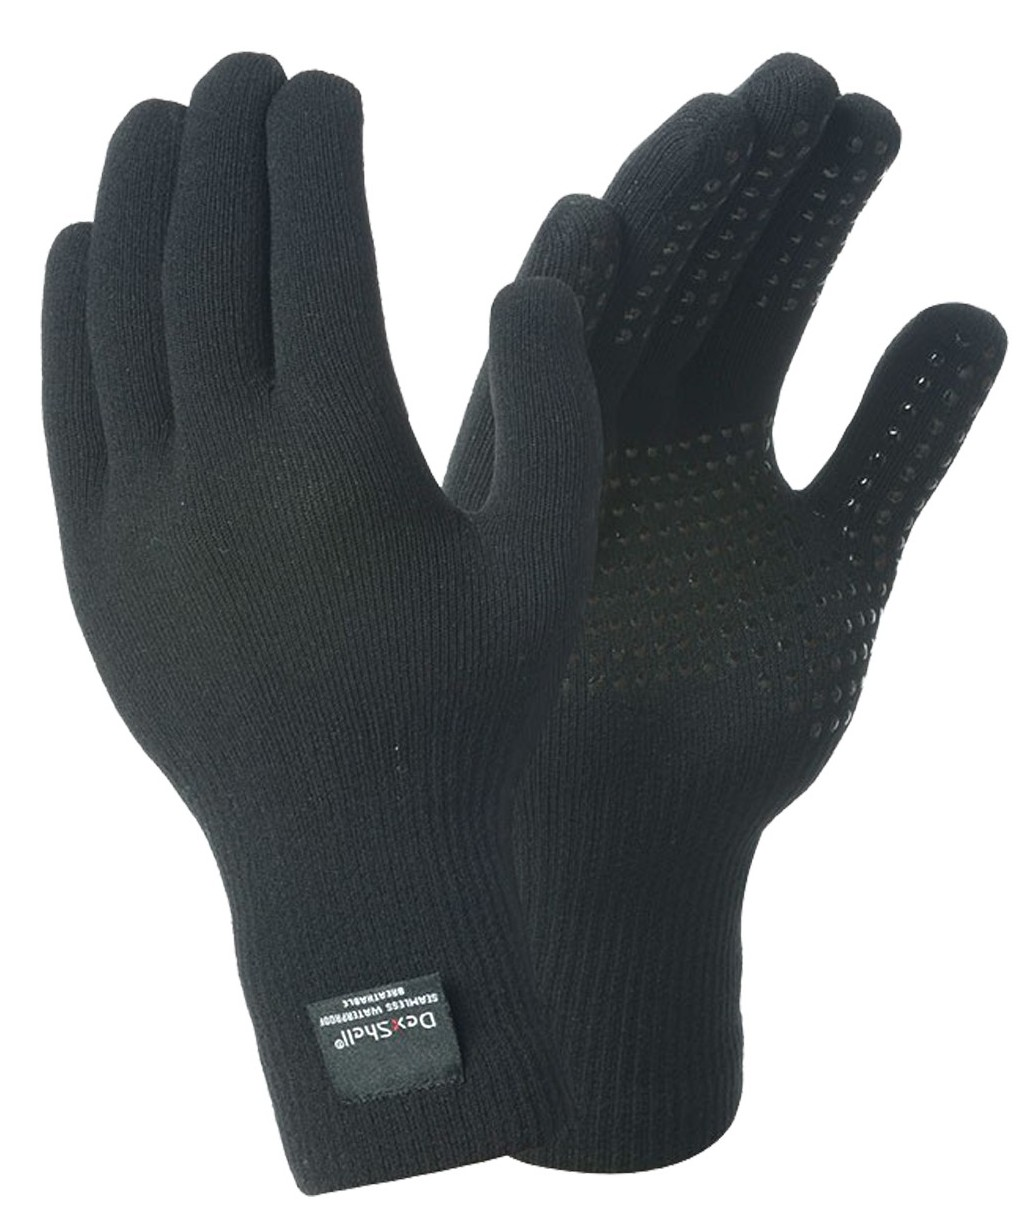 Dexshell ThermFit Wool Gloves DG328L